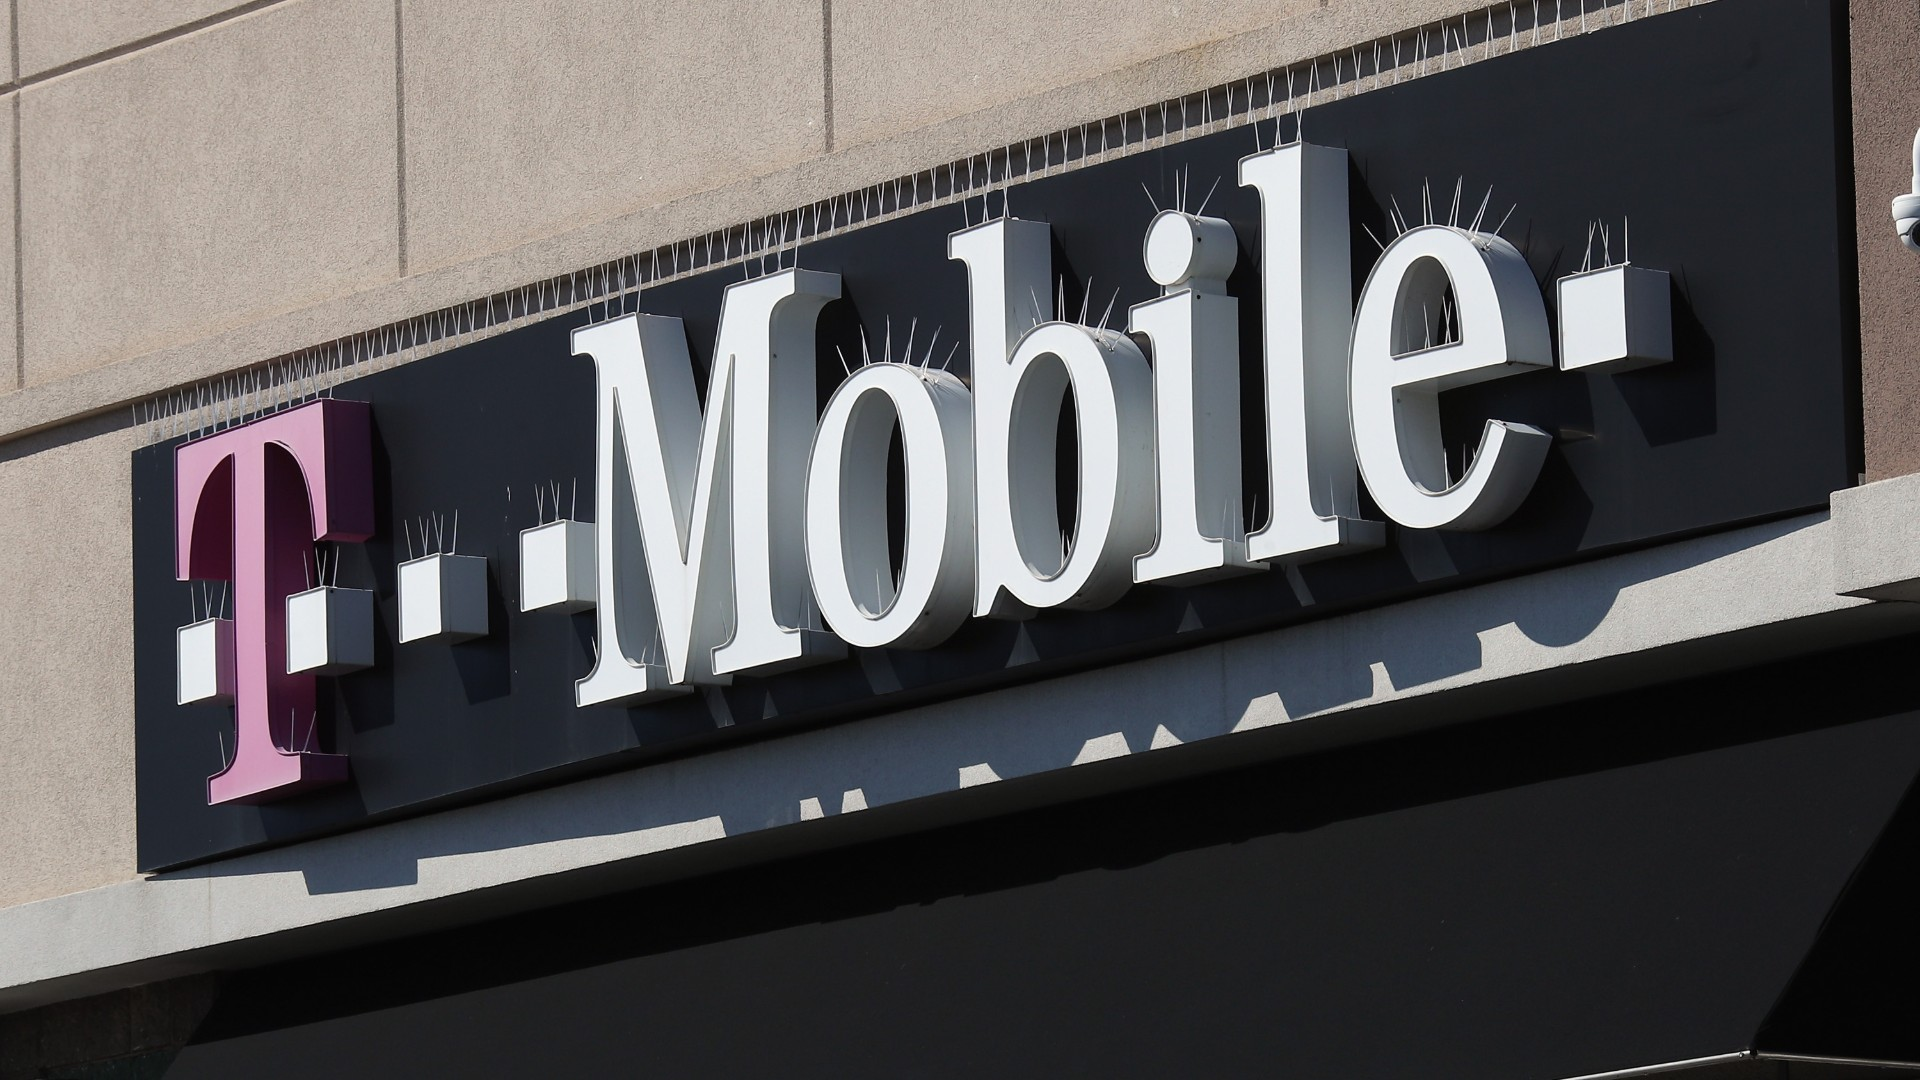 A general view of a T-Mobile store on March 26, 2020 in Deer Park, New York. (Bruce Bennett/Getty Images)